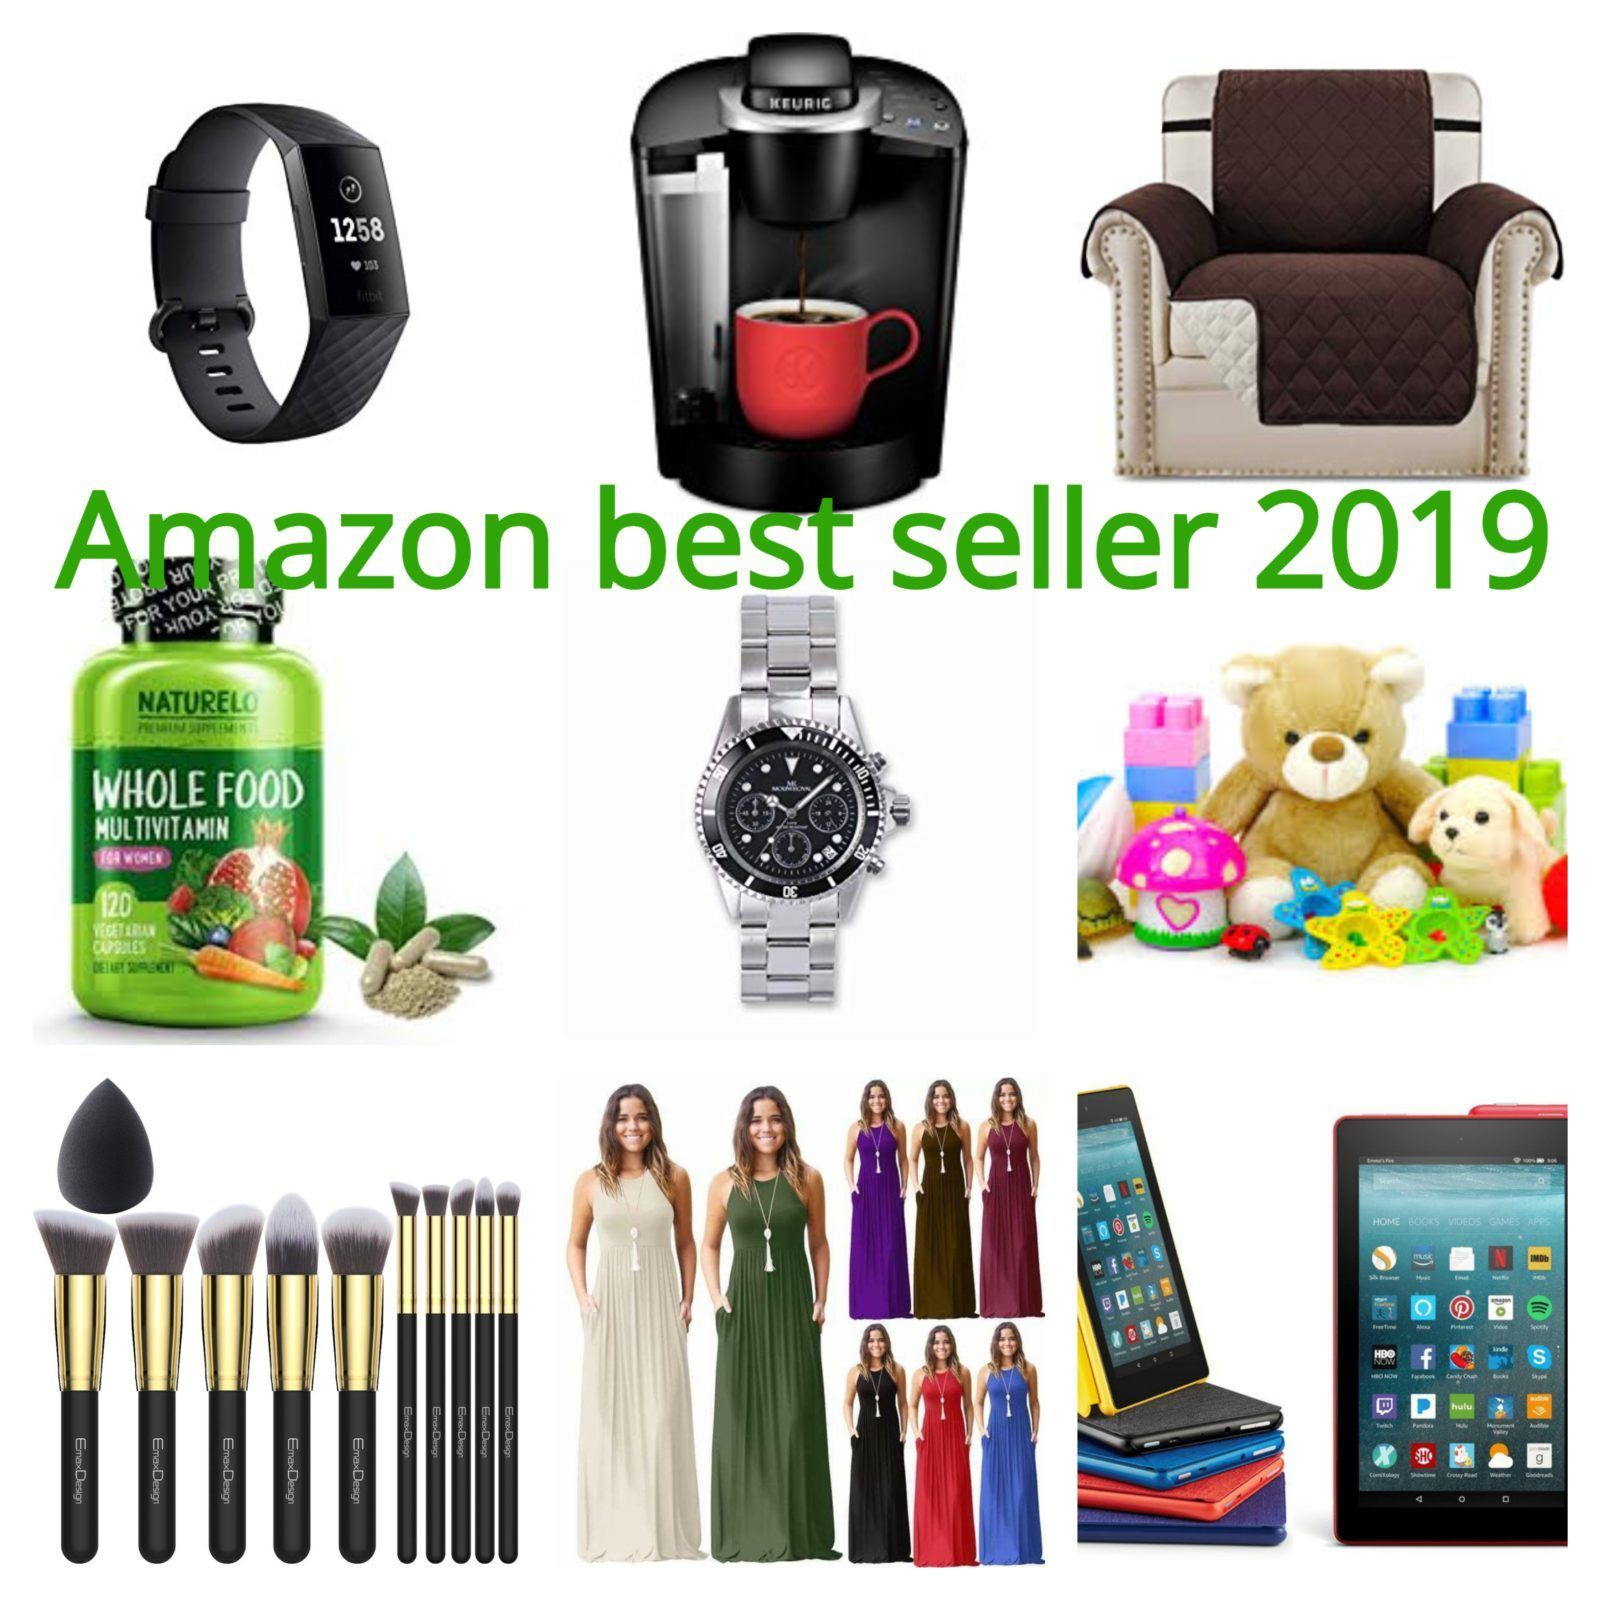 top selling amazon products 2019